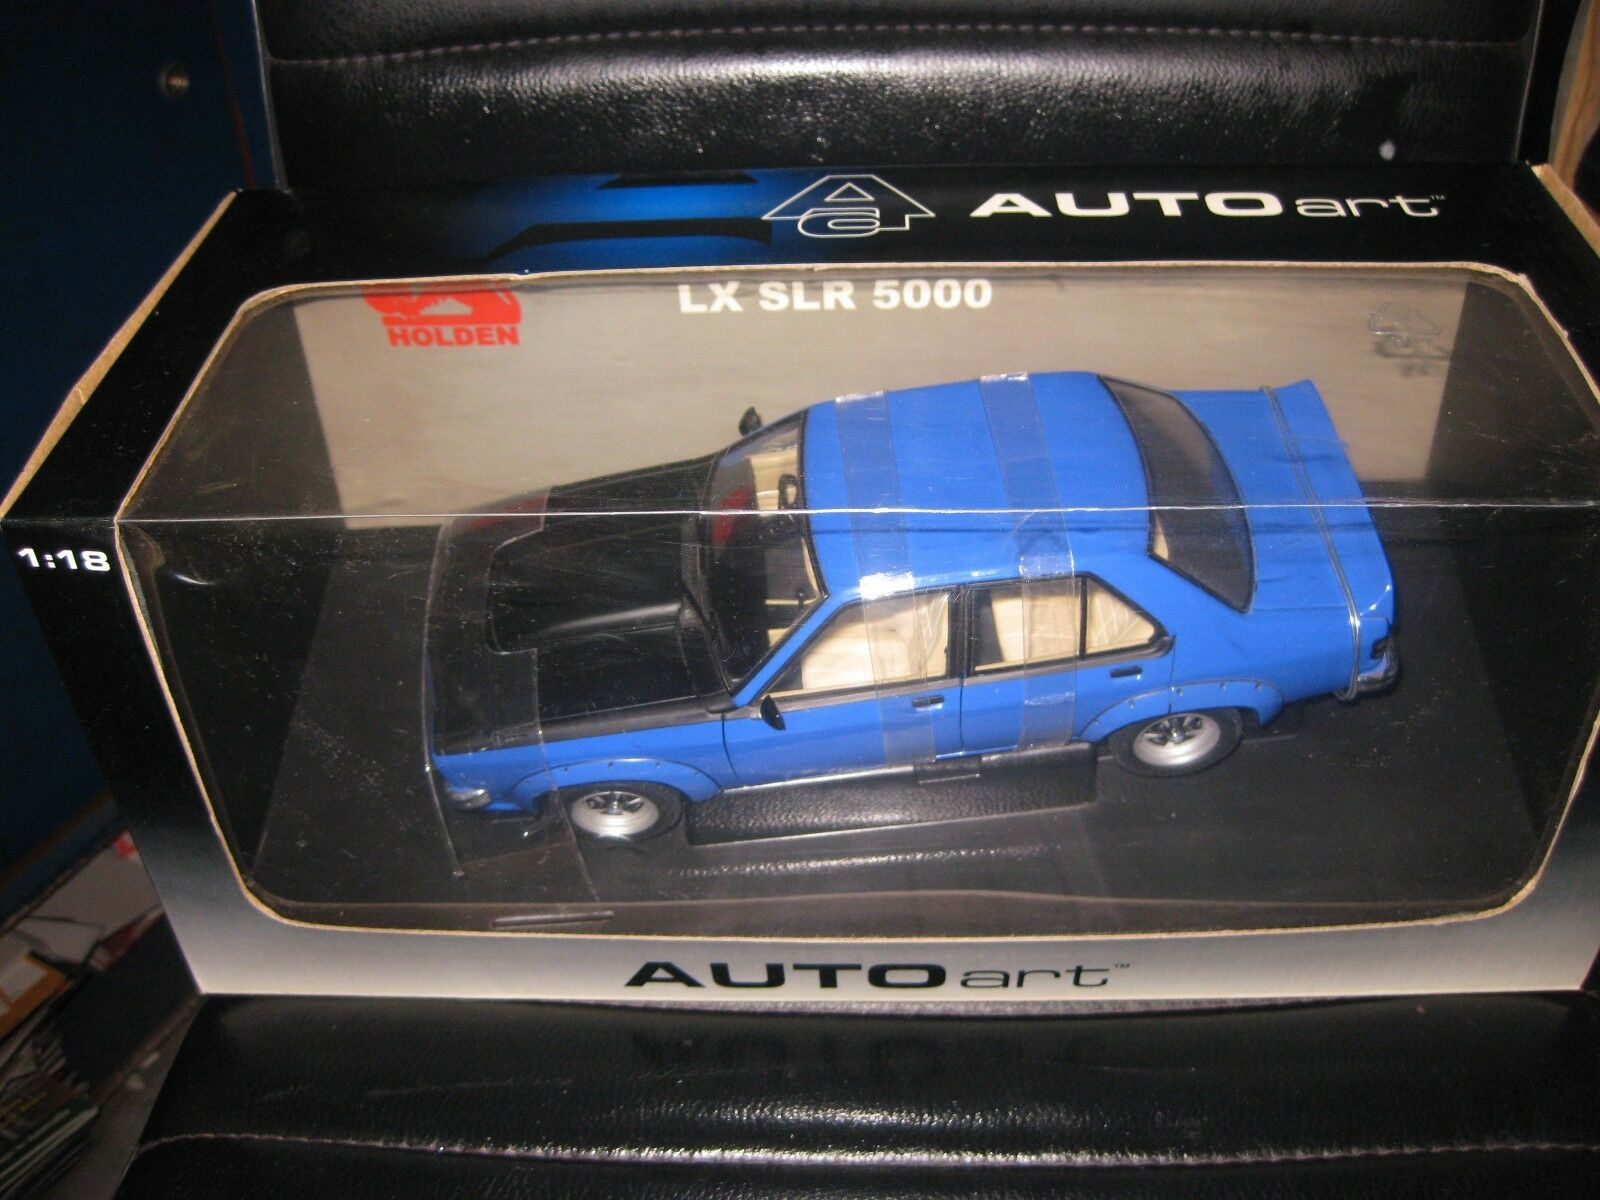 BIANTE AUTOart 1.18 HOLDEN LX SLR 5000 4dr ULTRA Azul  OLD SHOP STOCK  73461